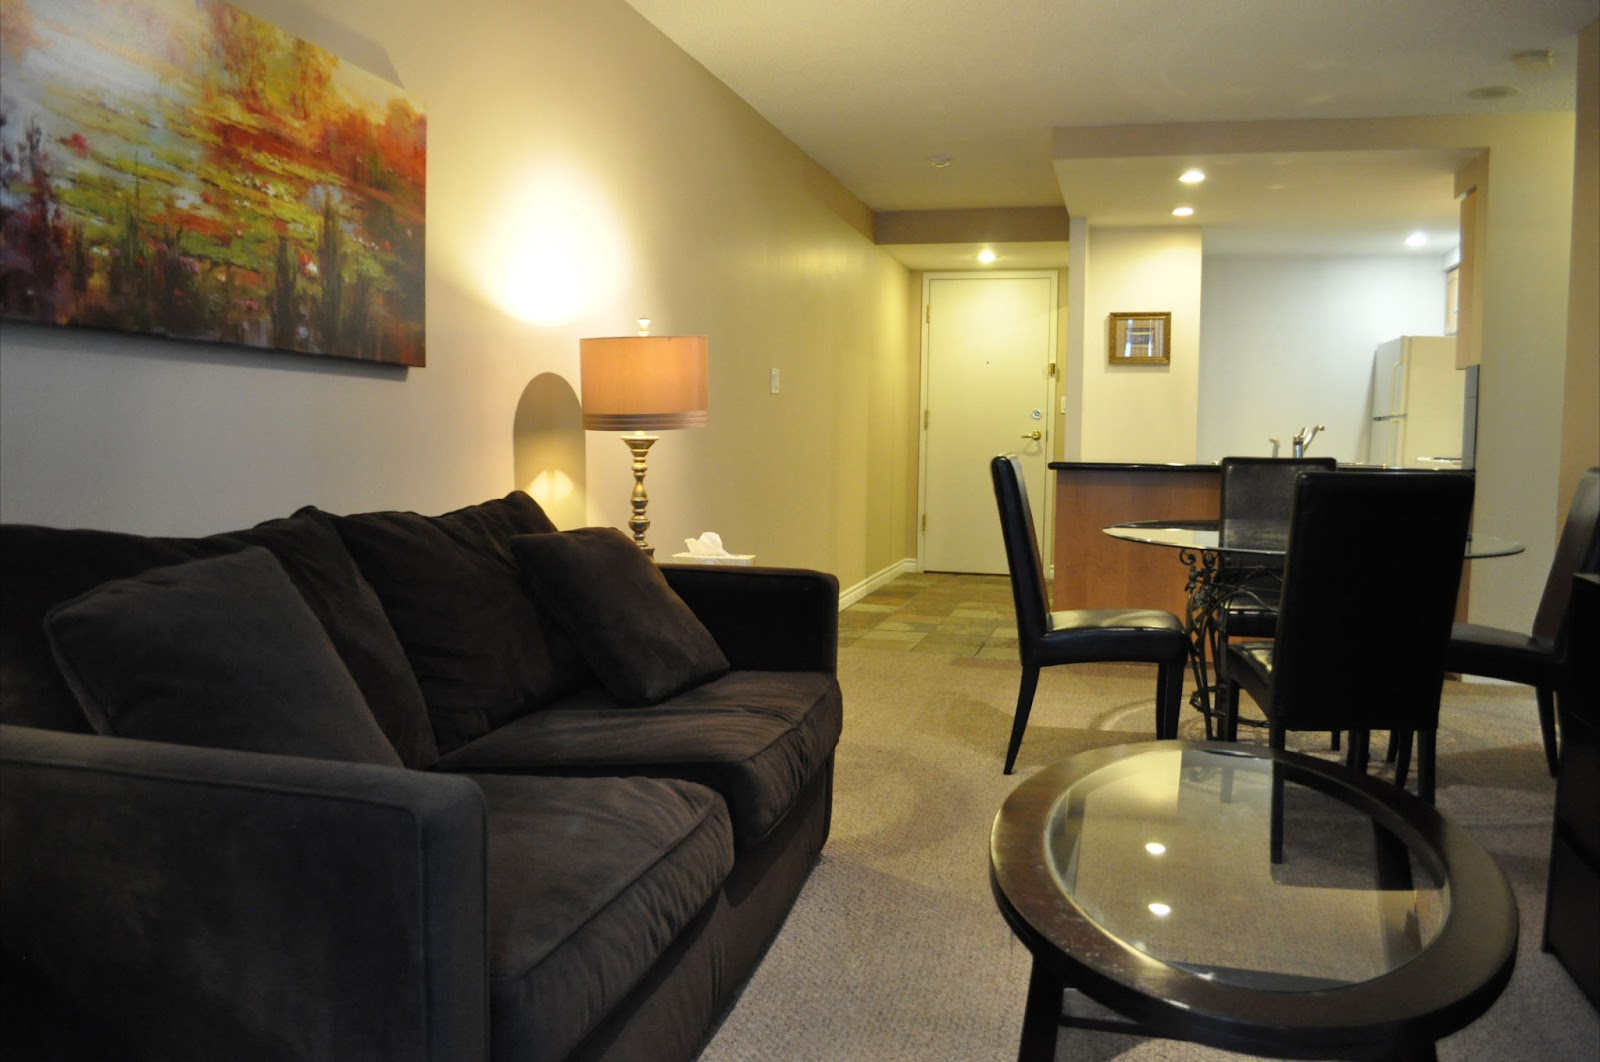 furnished apartments toronto city stay toronto ForFurnished Apartments